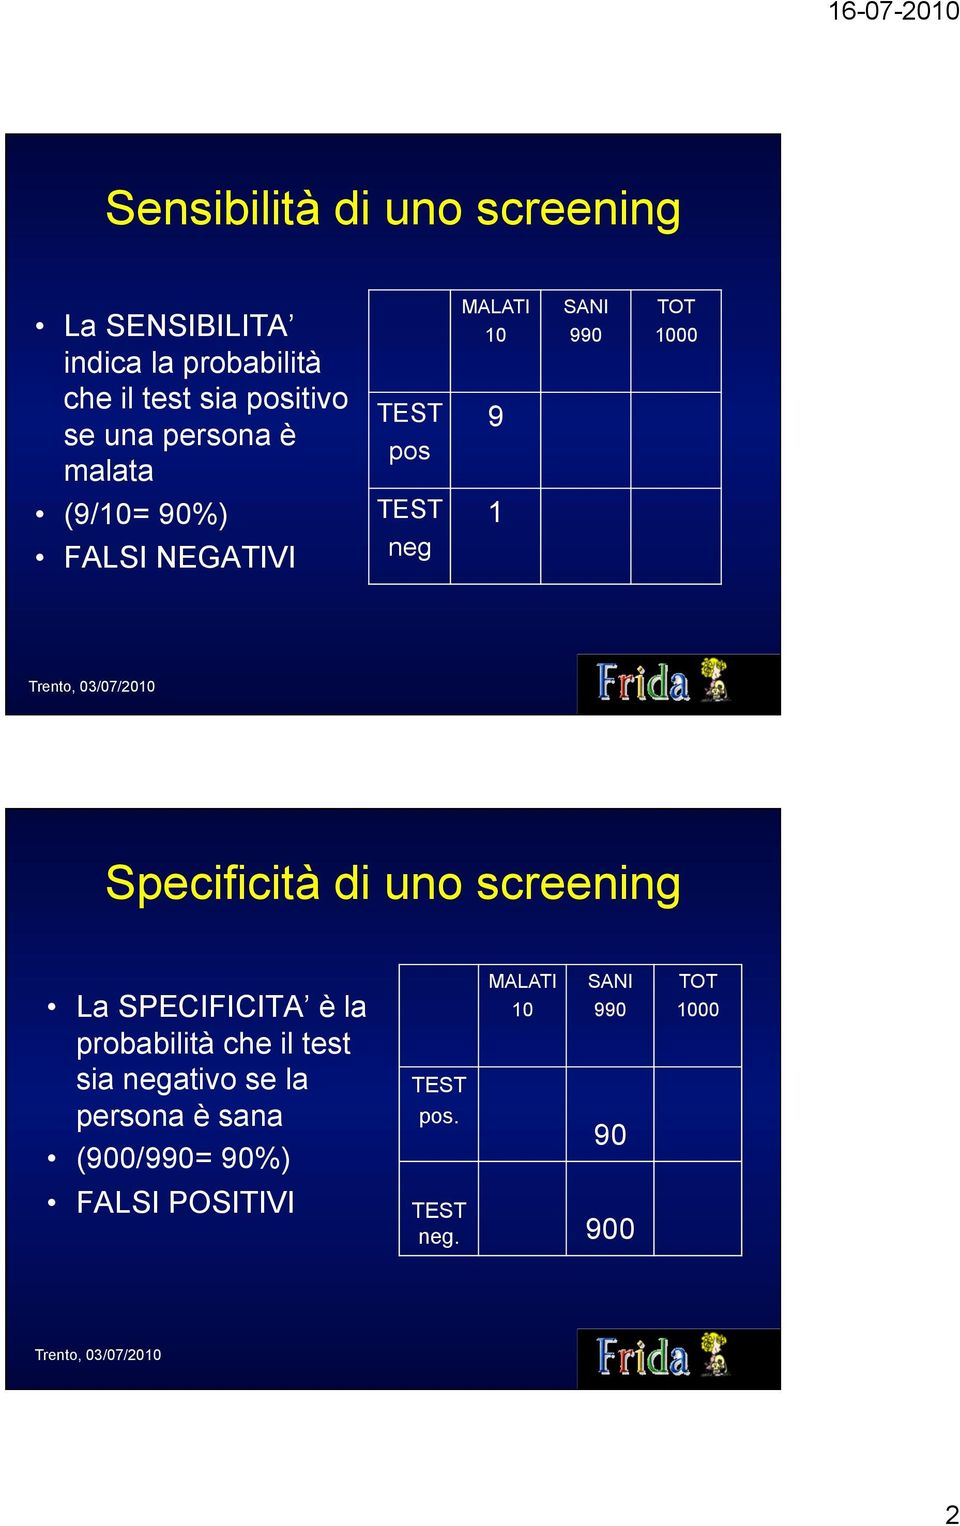 Specificità di uno screening La SPECIFICITA è la probabilità che il test sia negativo se la